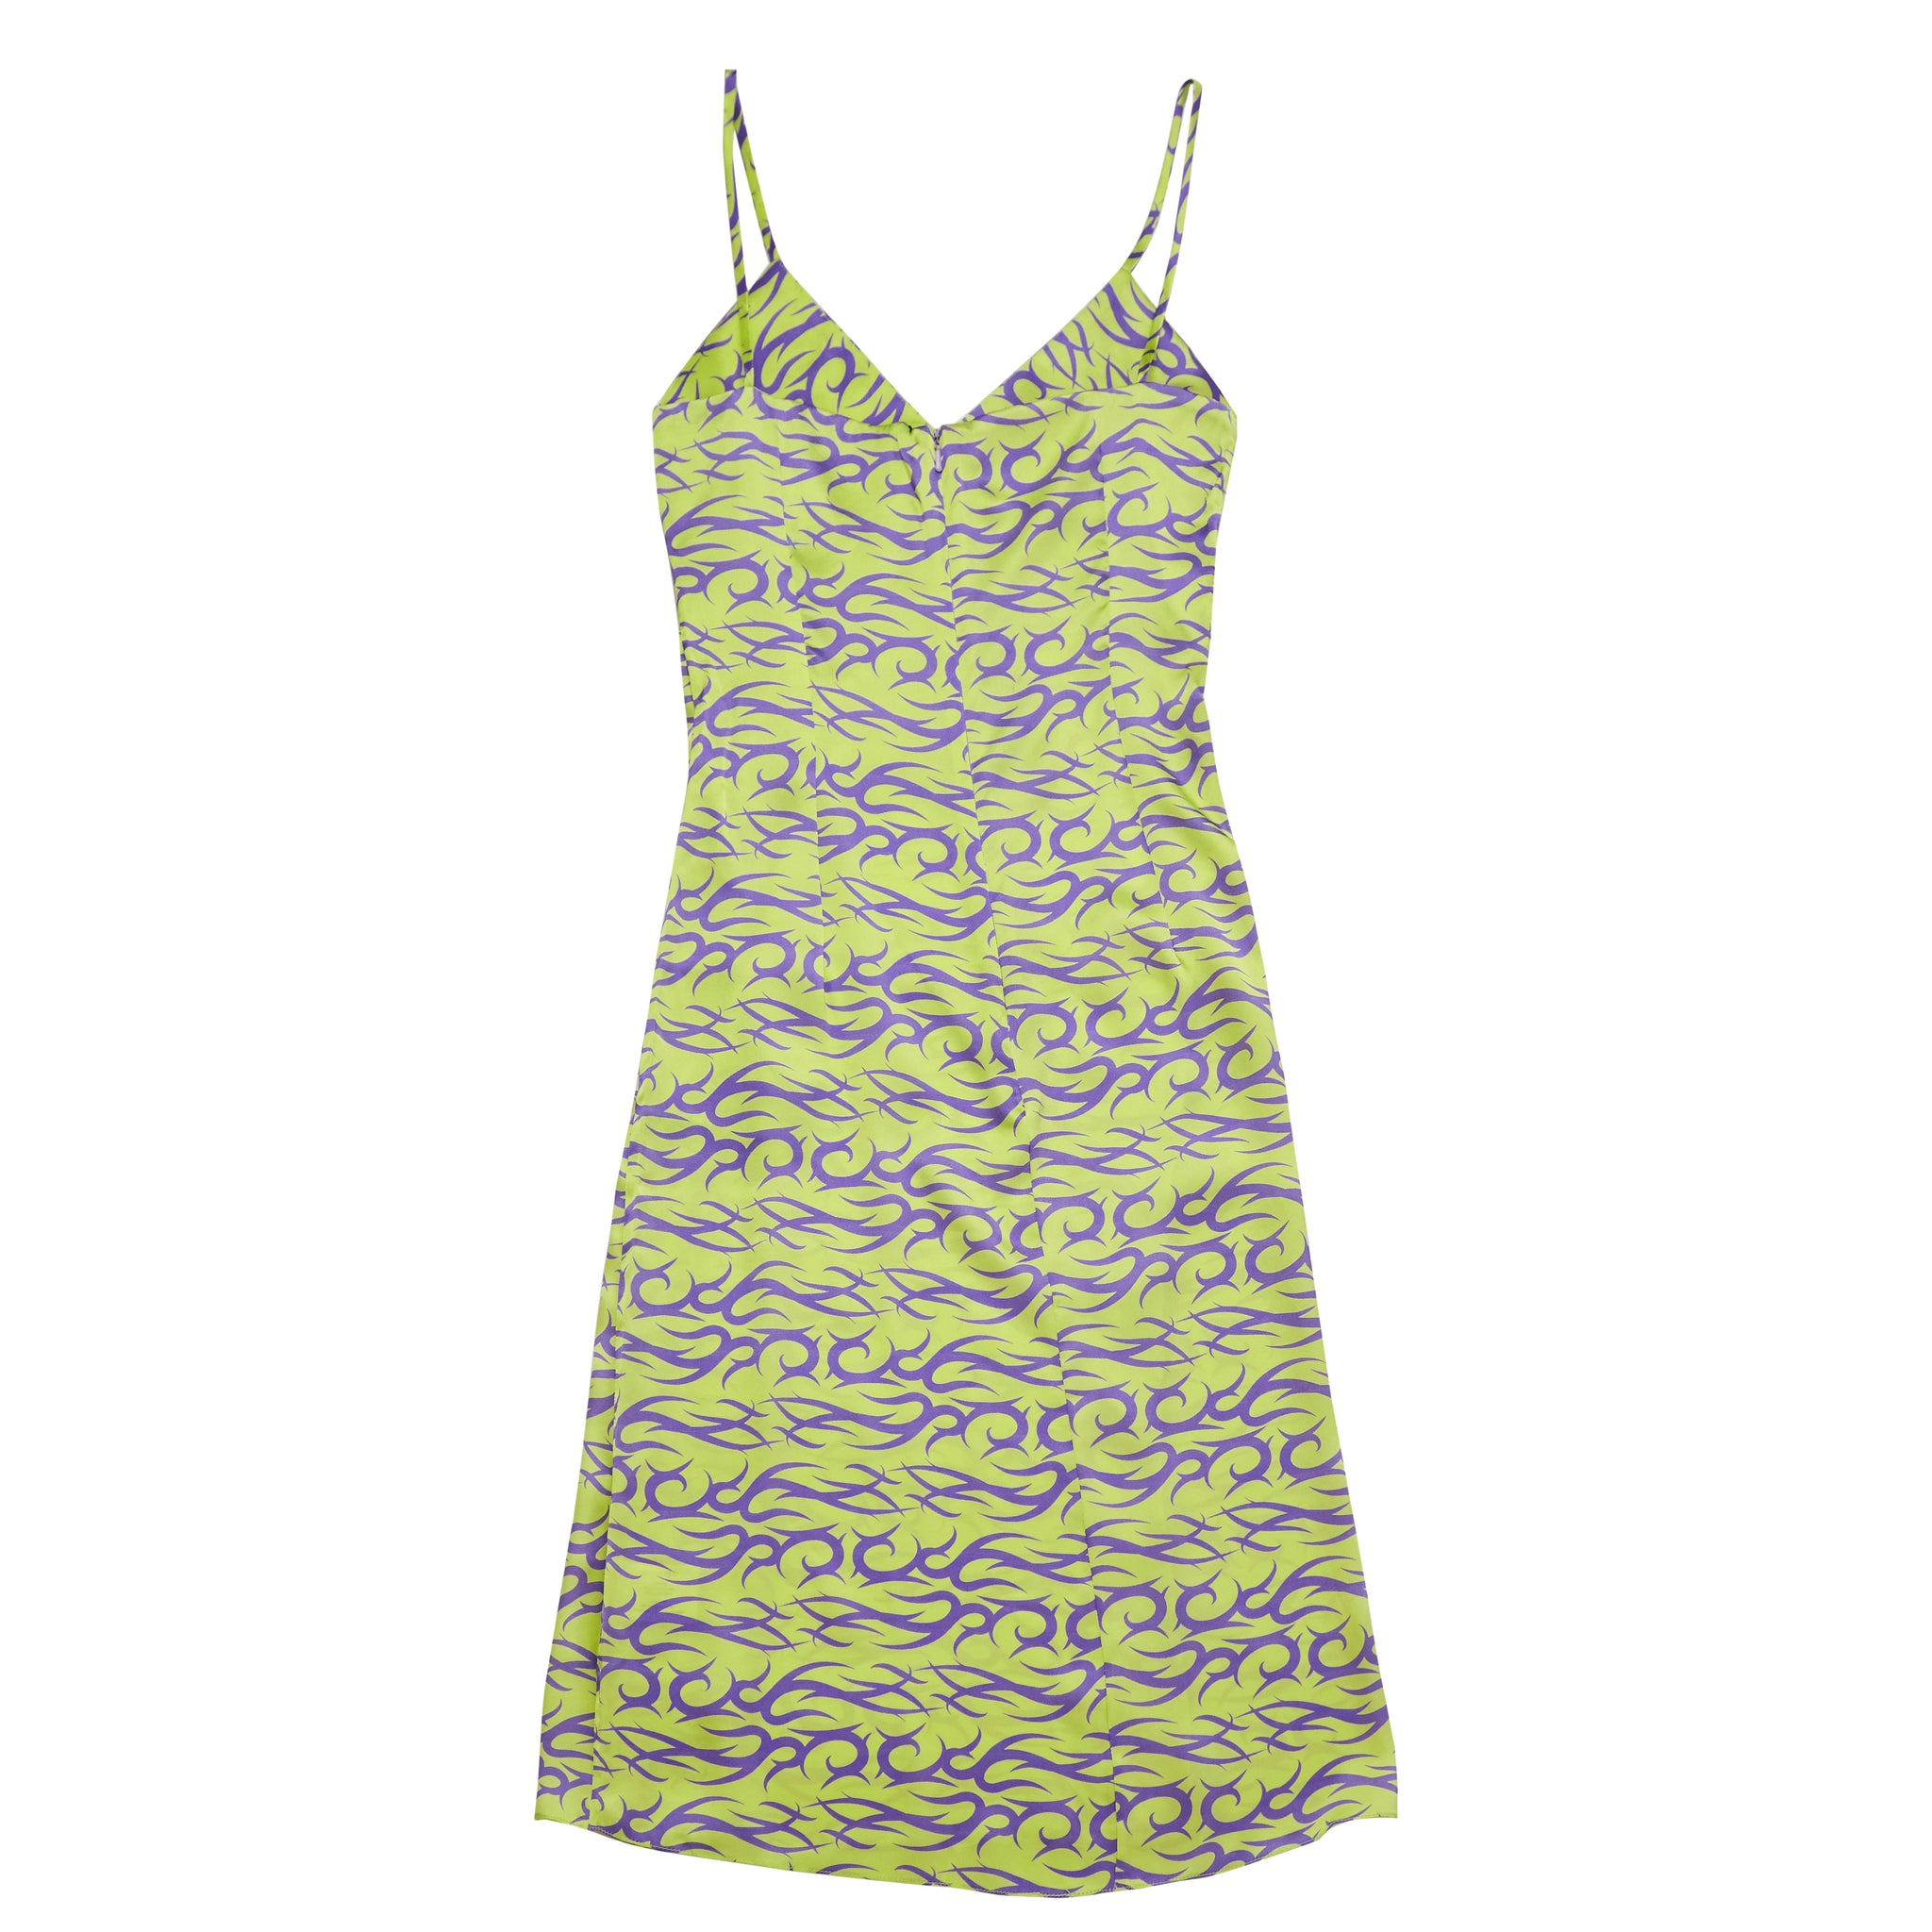 SLIP DRESS IN PURPLE AND MINT